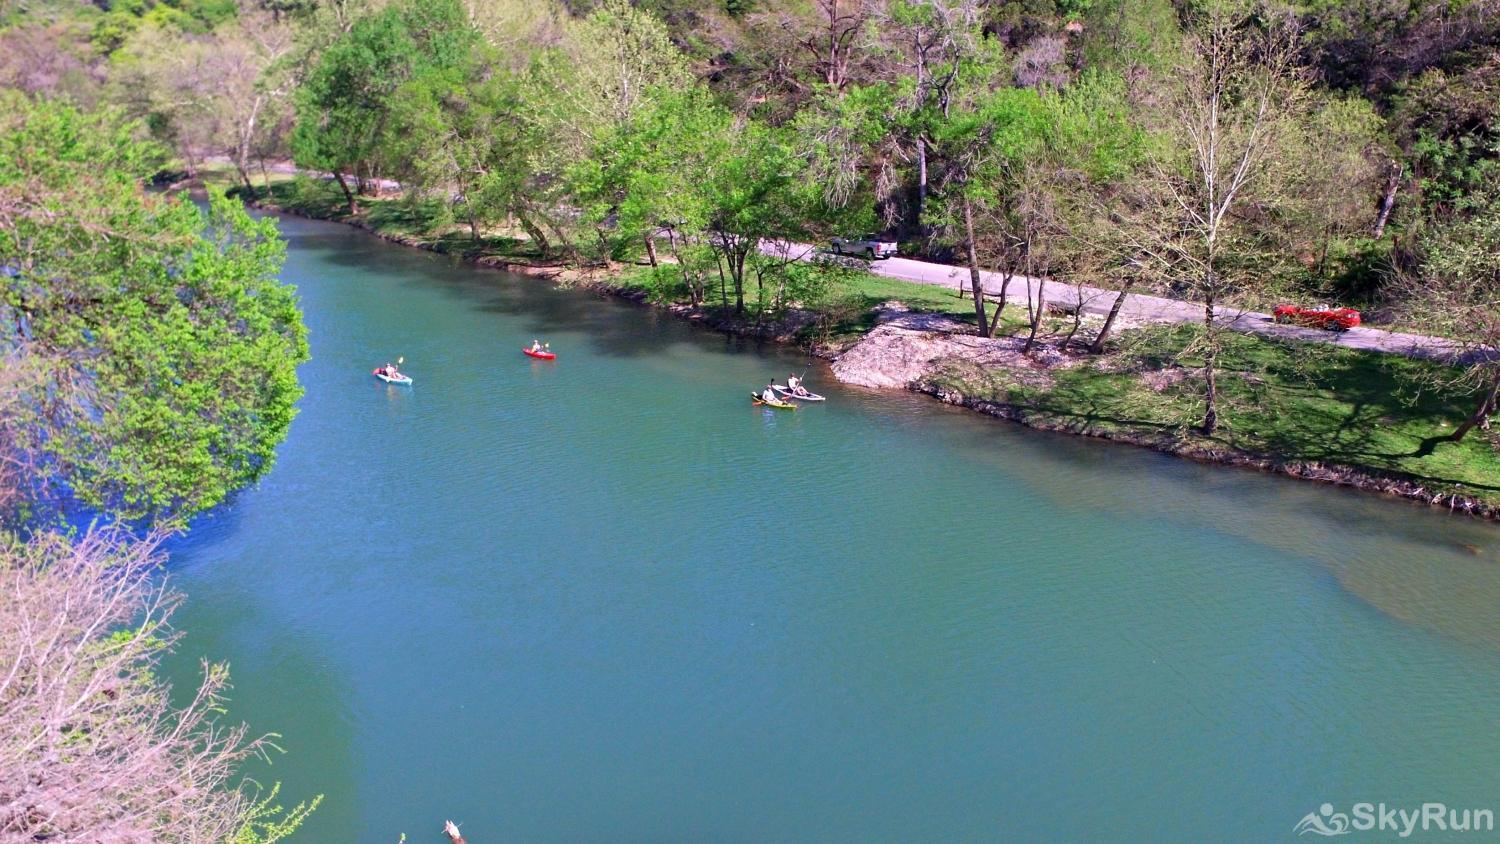 STAR OF TEXAS Popular Area for Swimming, Tubing, and Kayaking